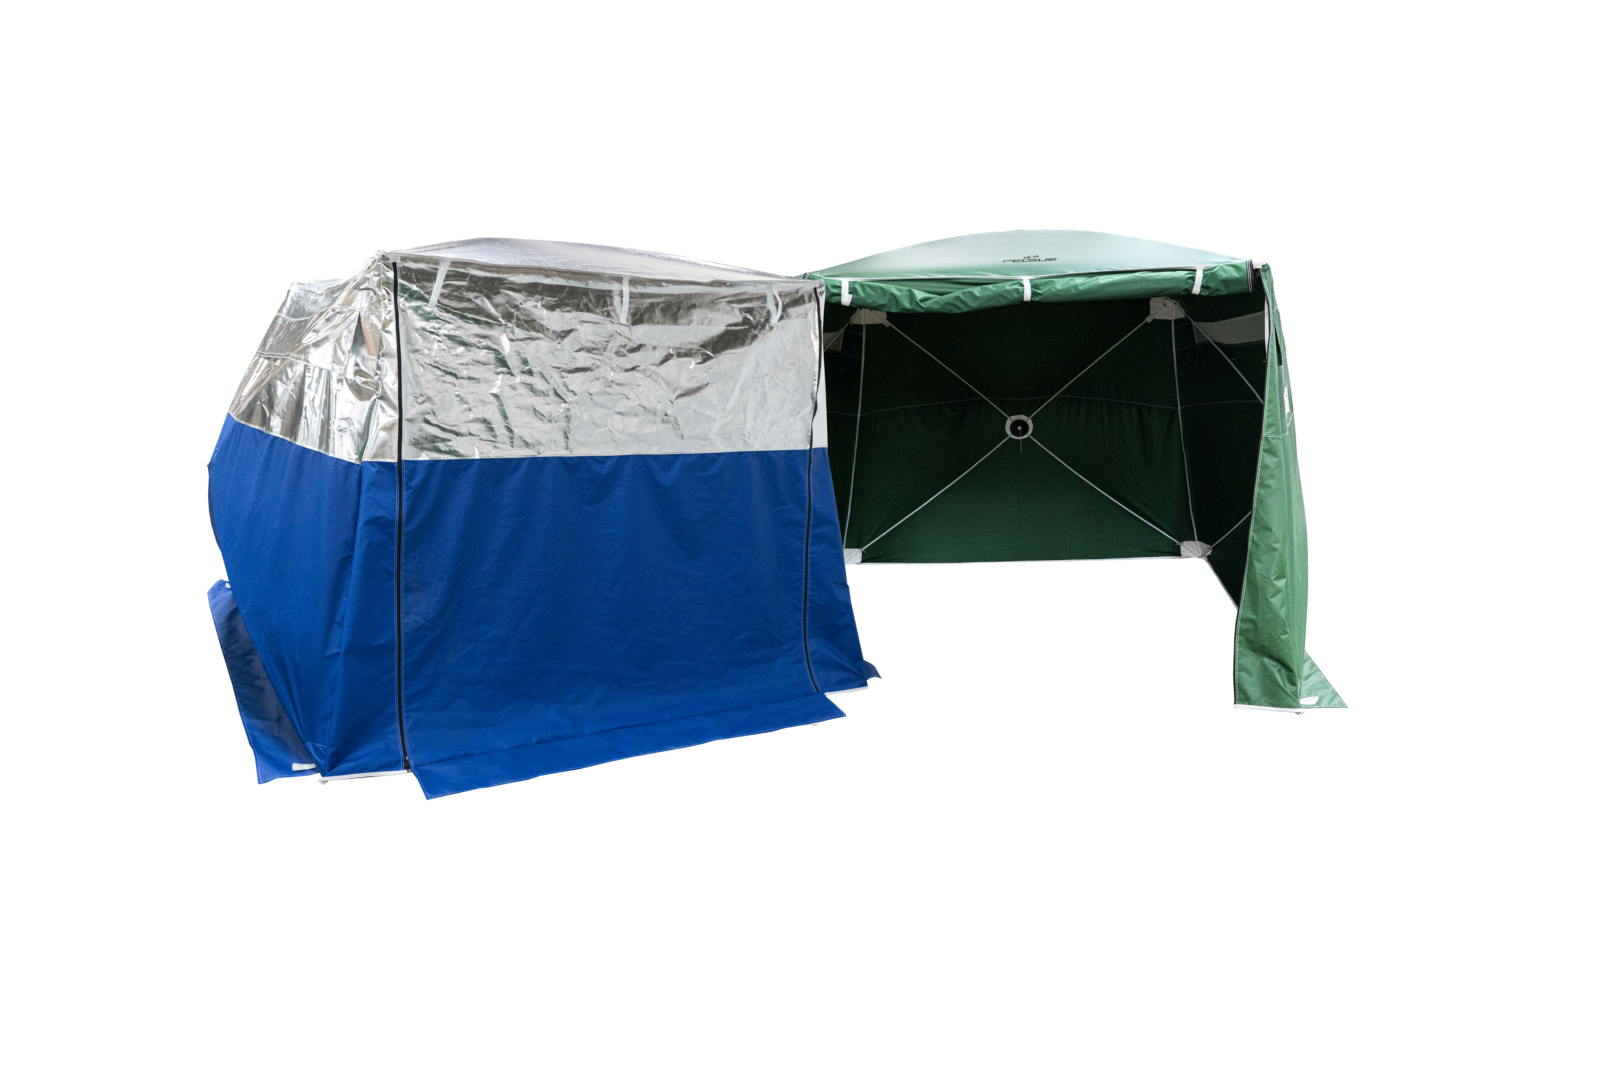 Pelsue Custom Tents